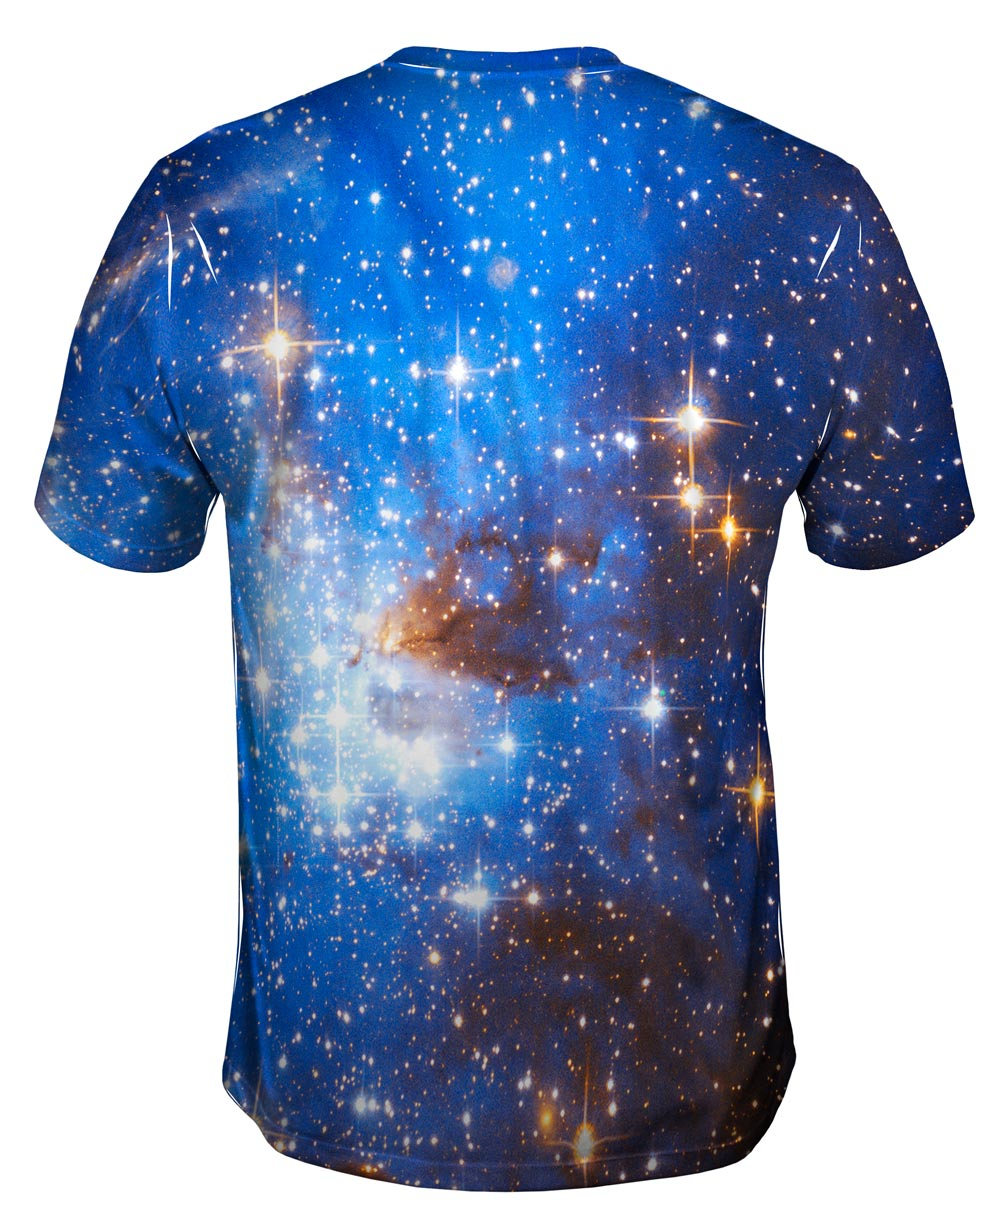 Yizzam- Stellar Space Nursery - New Men Unisex Tee Shirt XS S M L XL 2XL 3XL 4XL